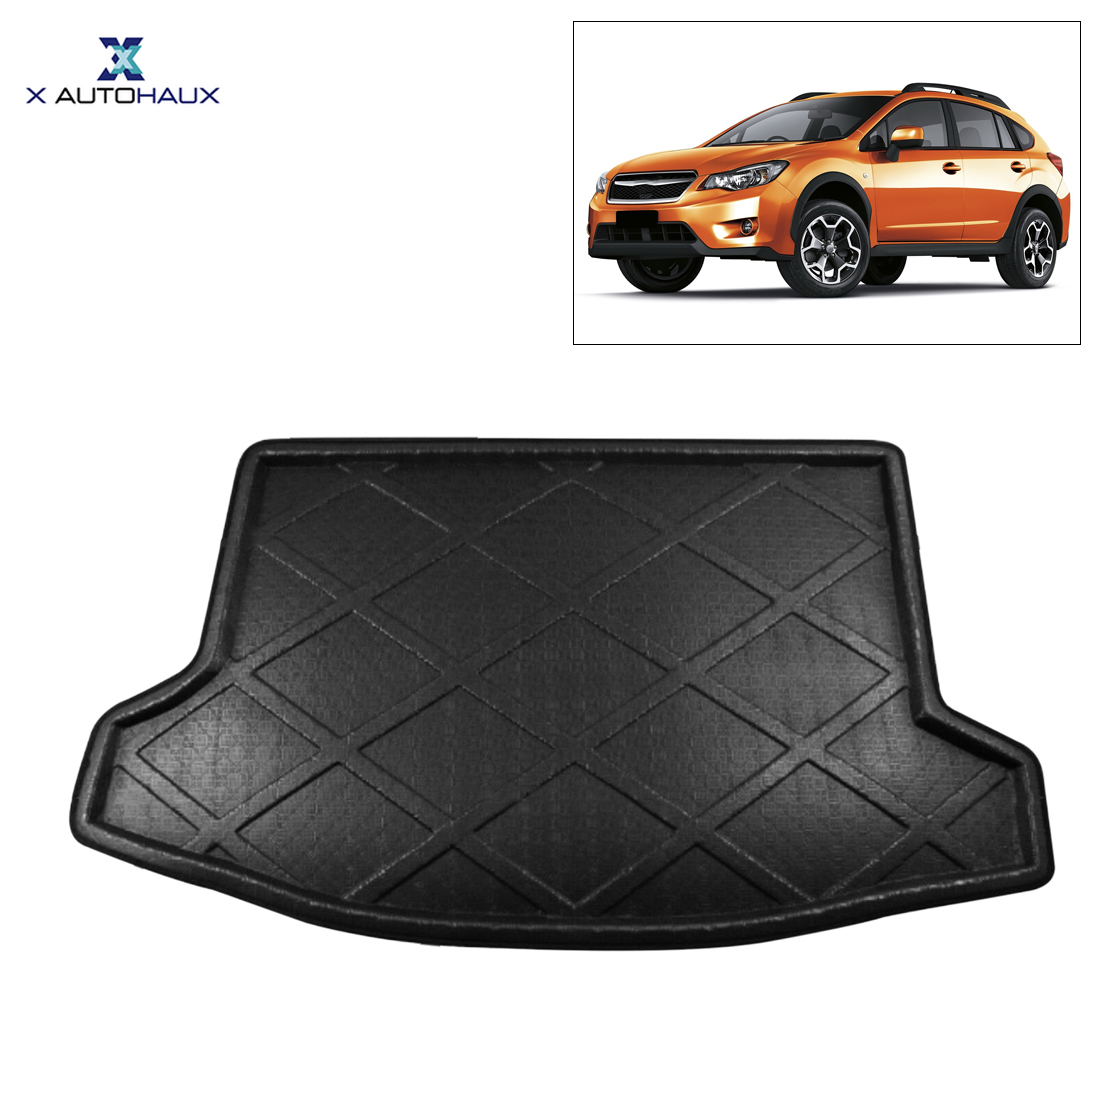 X AUTOHAUX Black Car Rear Trunk Floor Mat Cargo Boot Liner Carpet Tray for Subaru XV XV Crosstrek Outback Forester 2009-2017